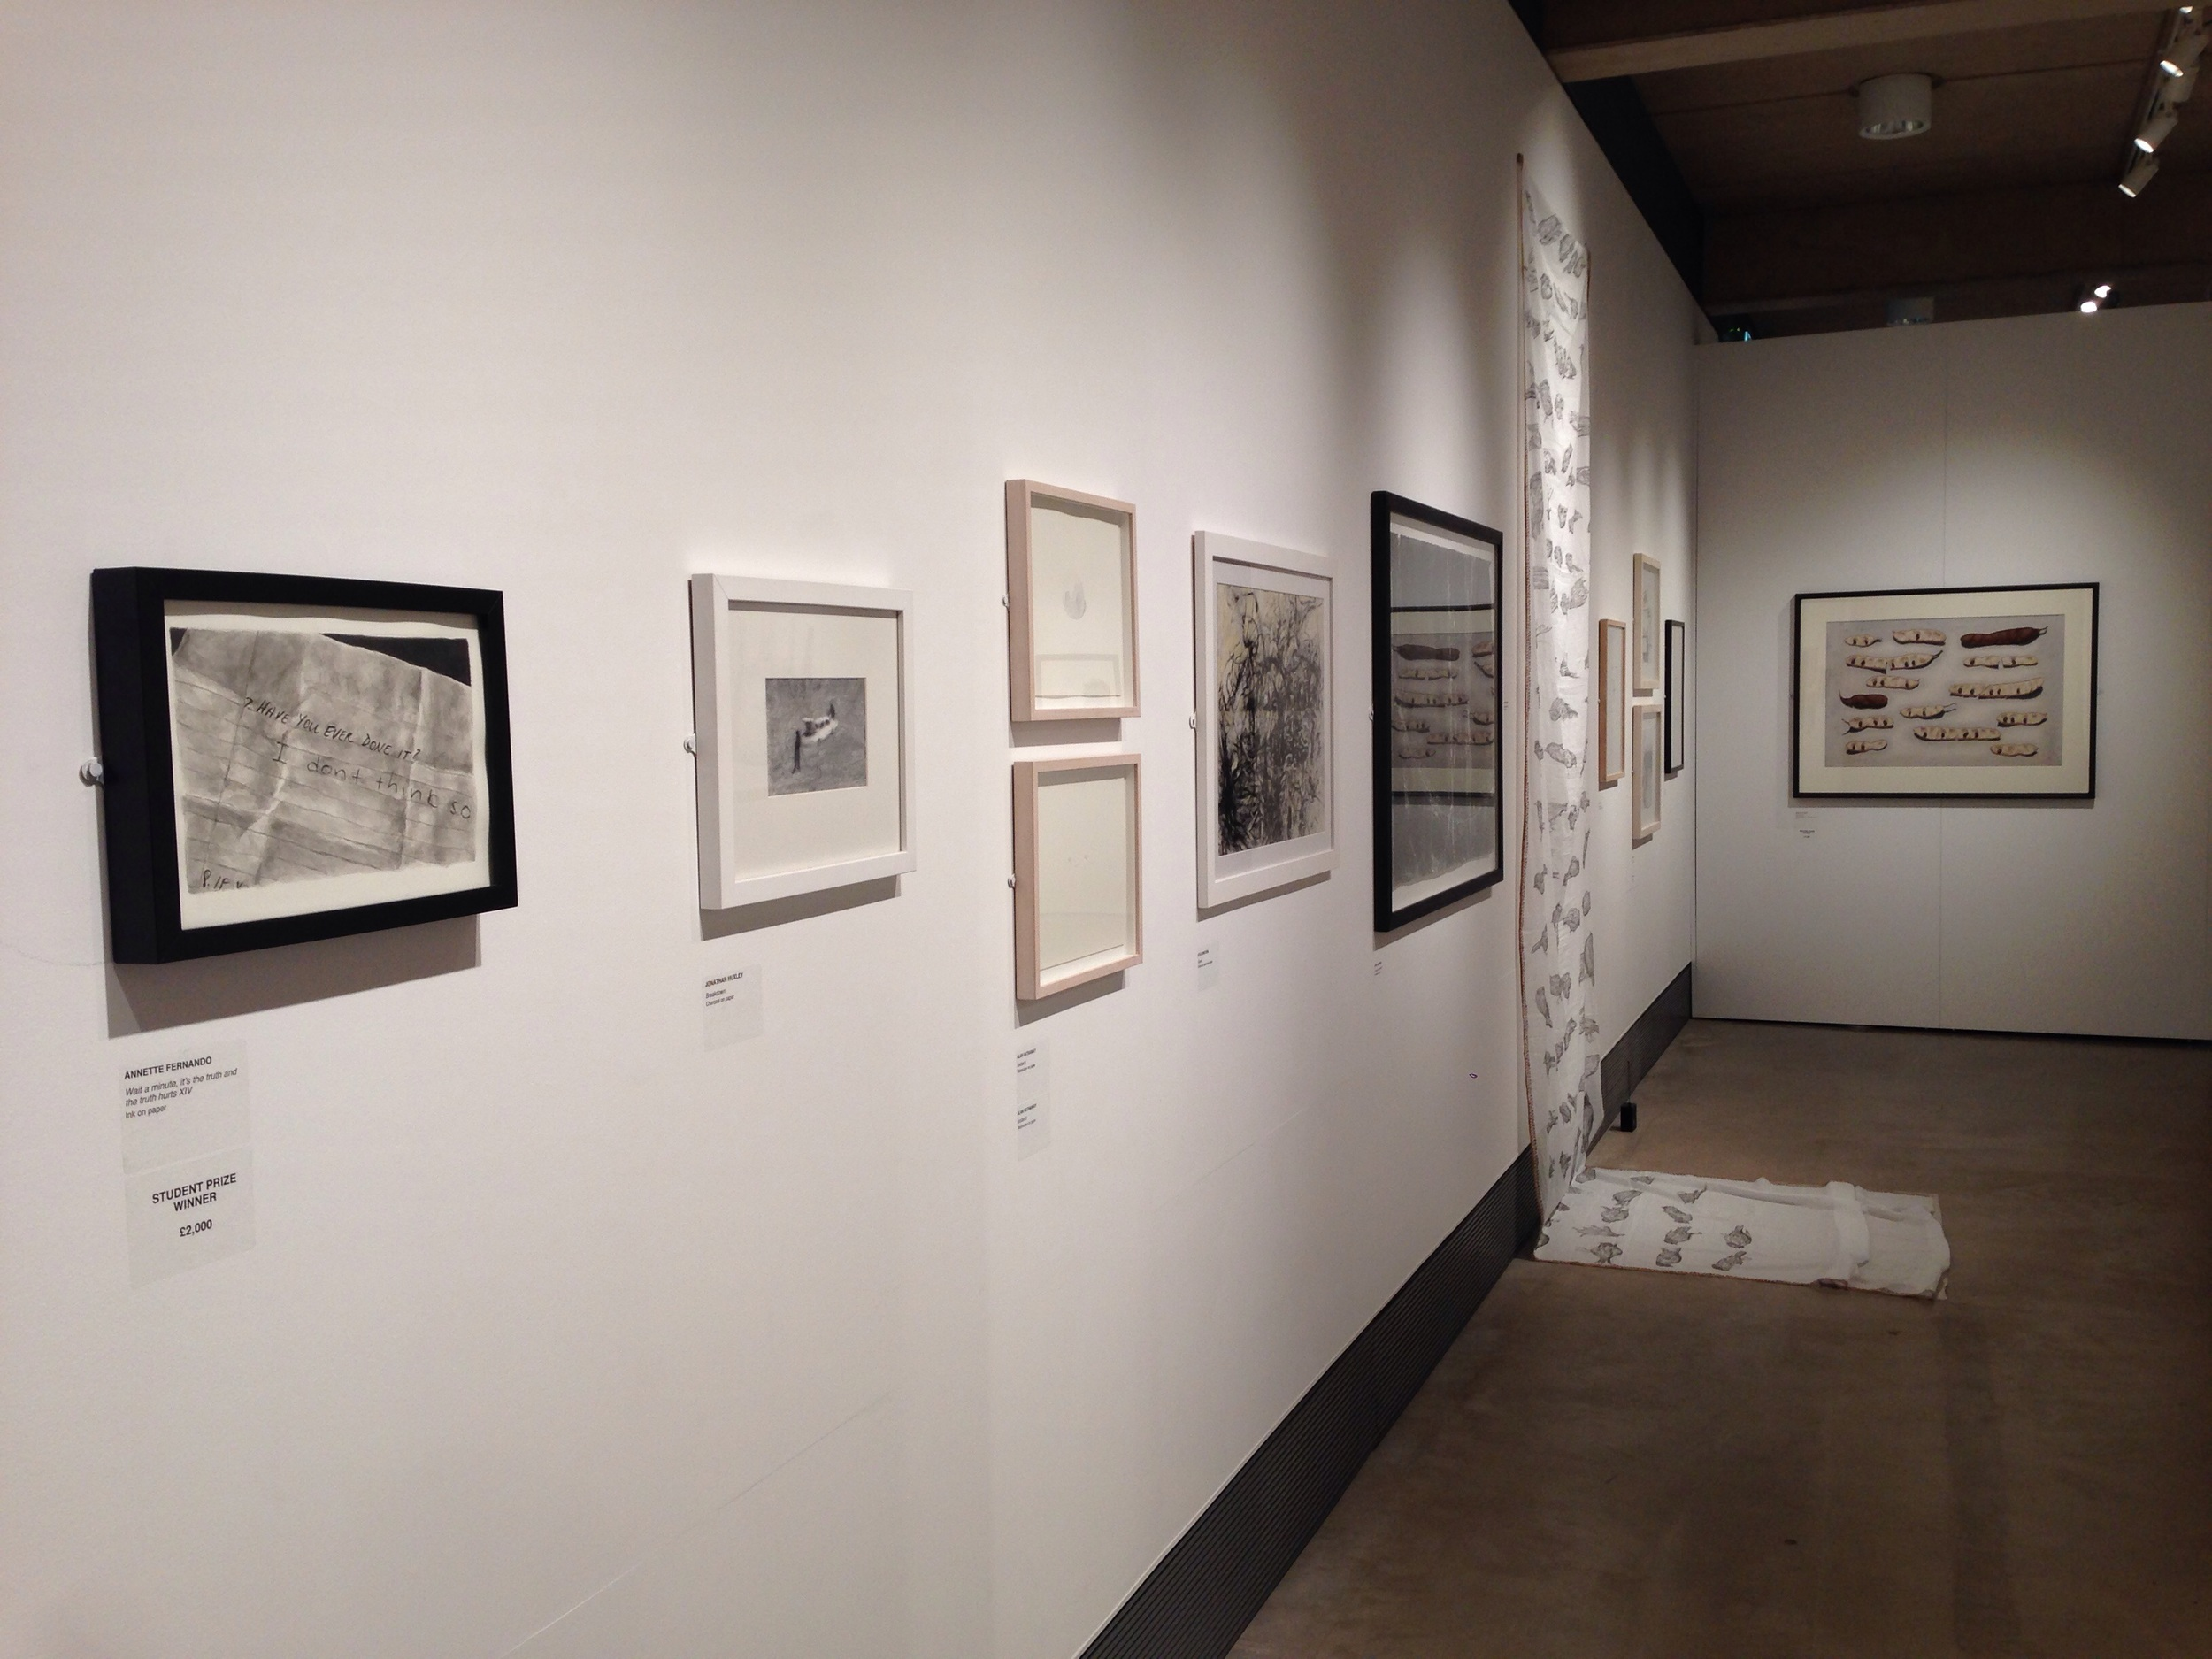 Exhibition view of the Jerwood Drawing Prize